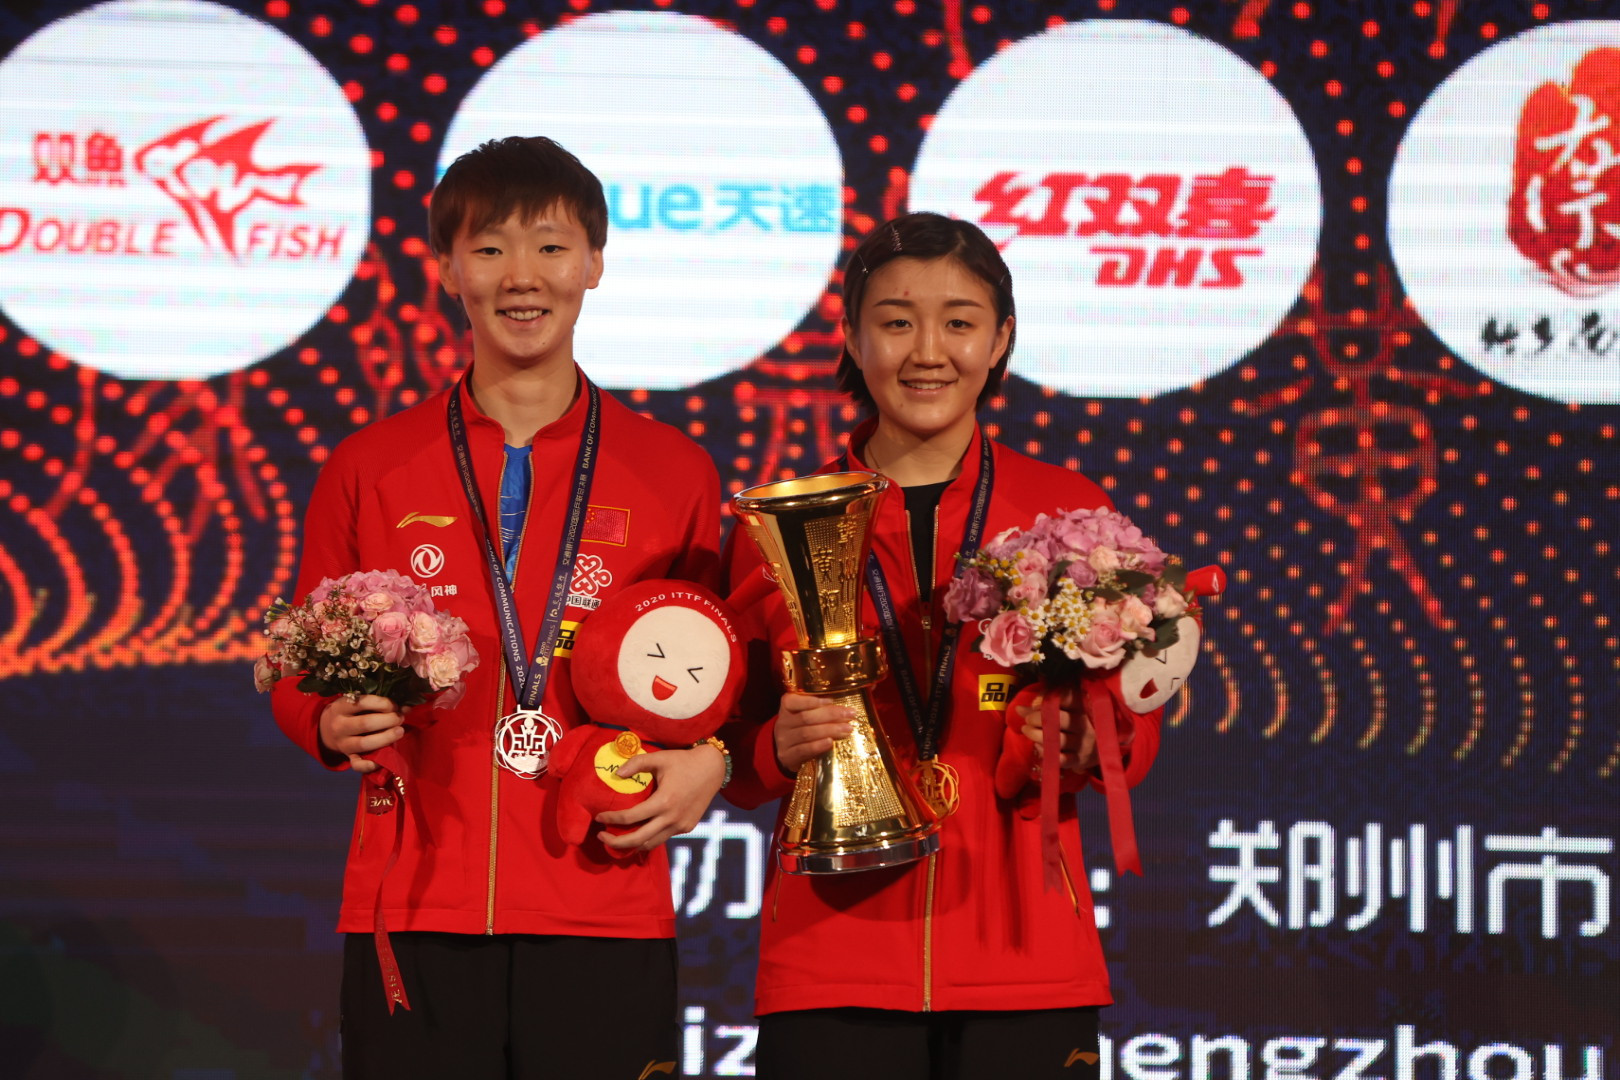 Ma and Chen set new records with victories at ITTF Finals